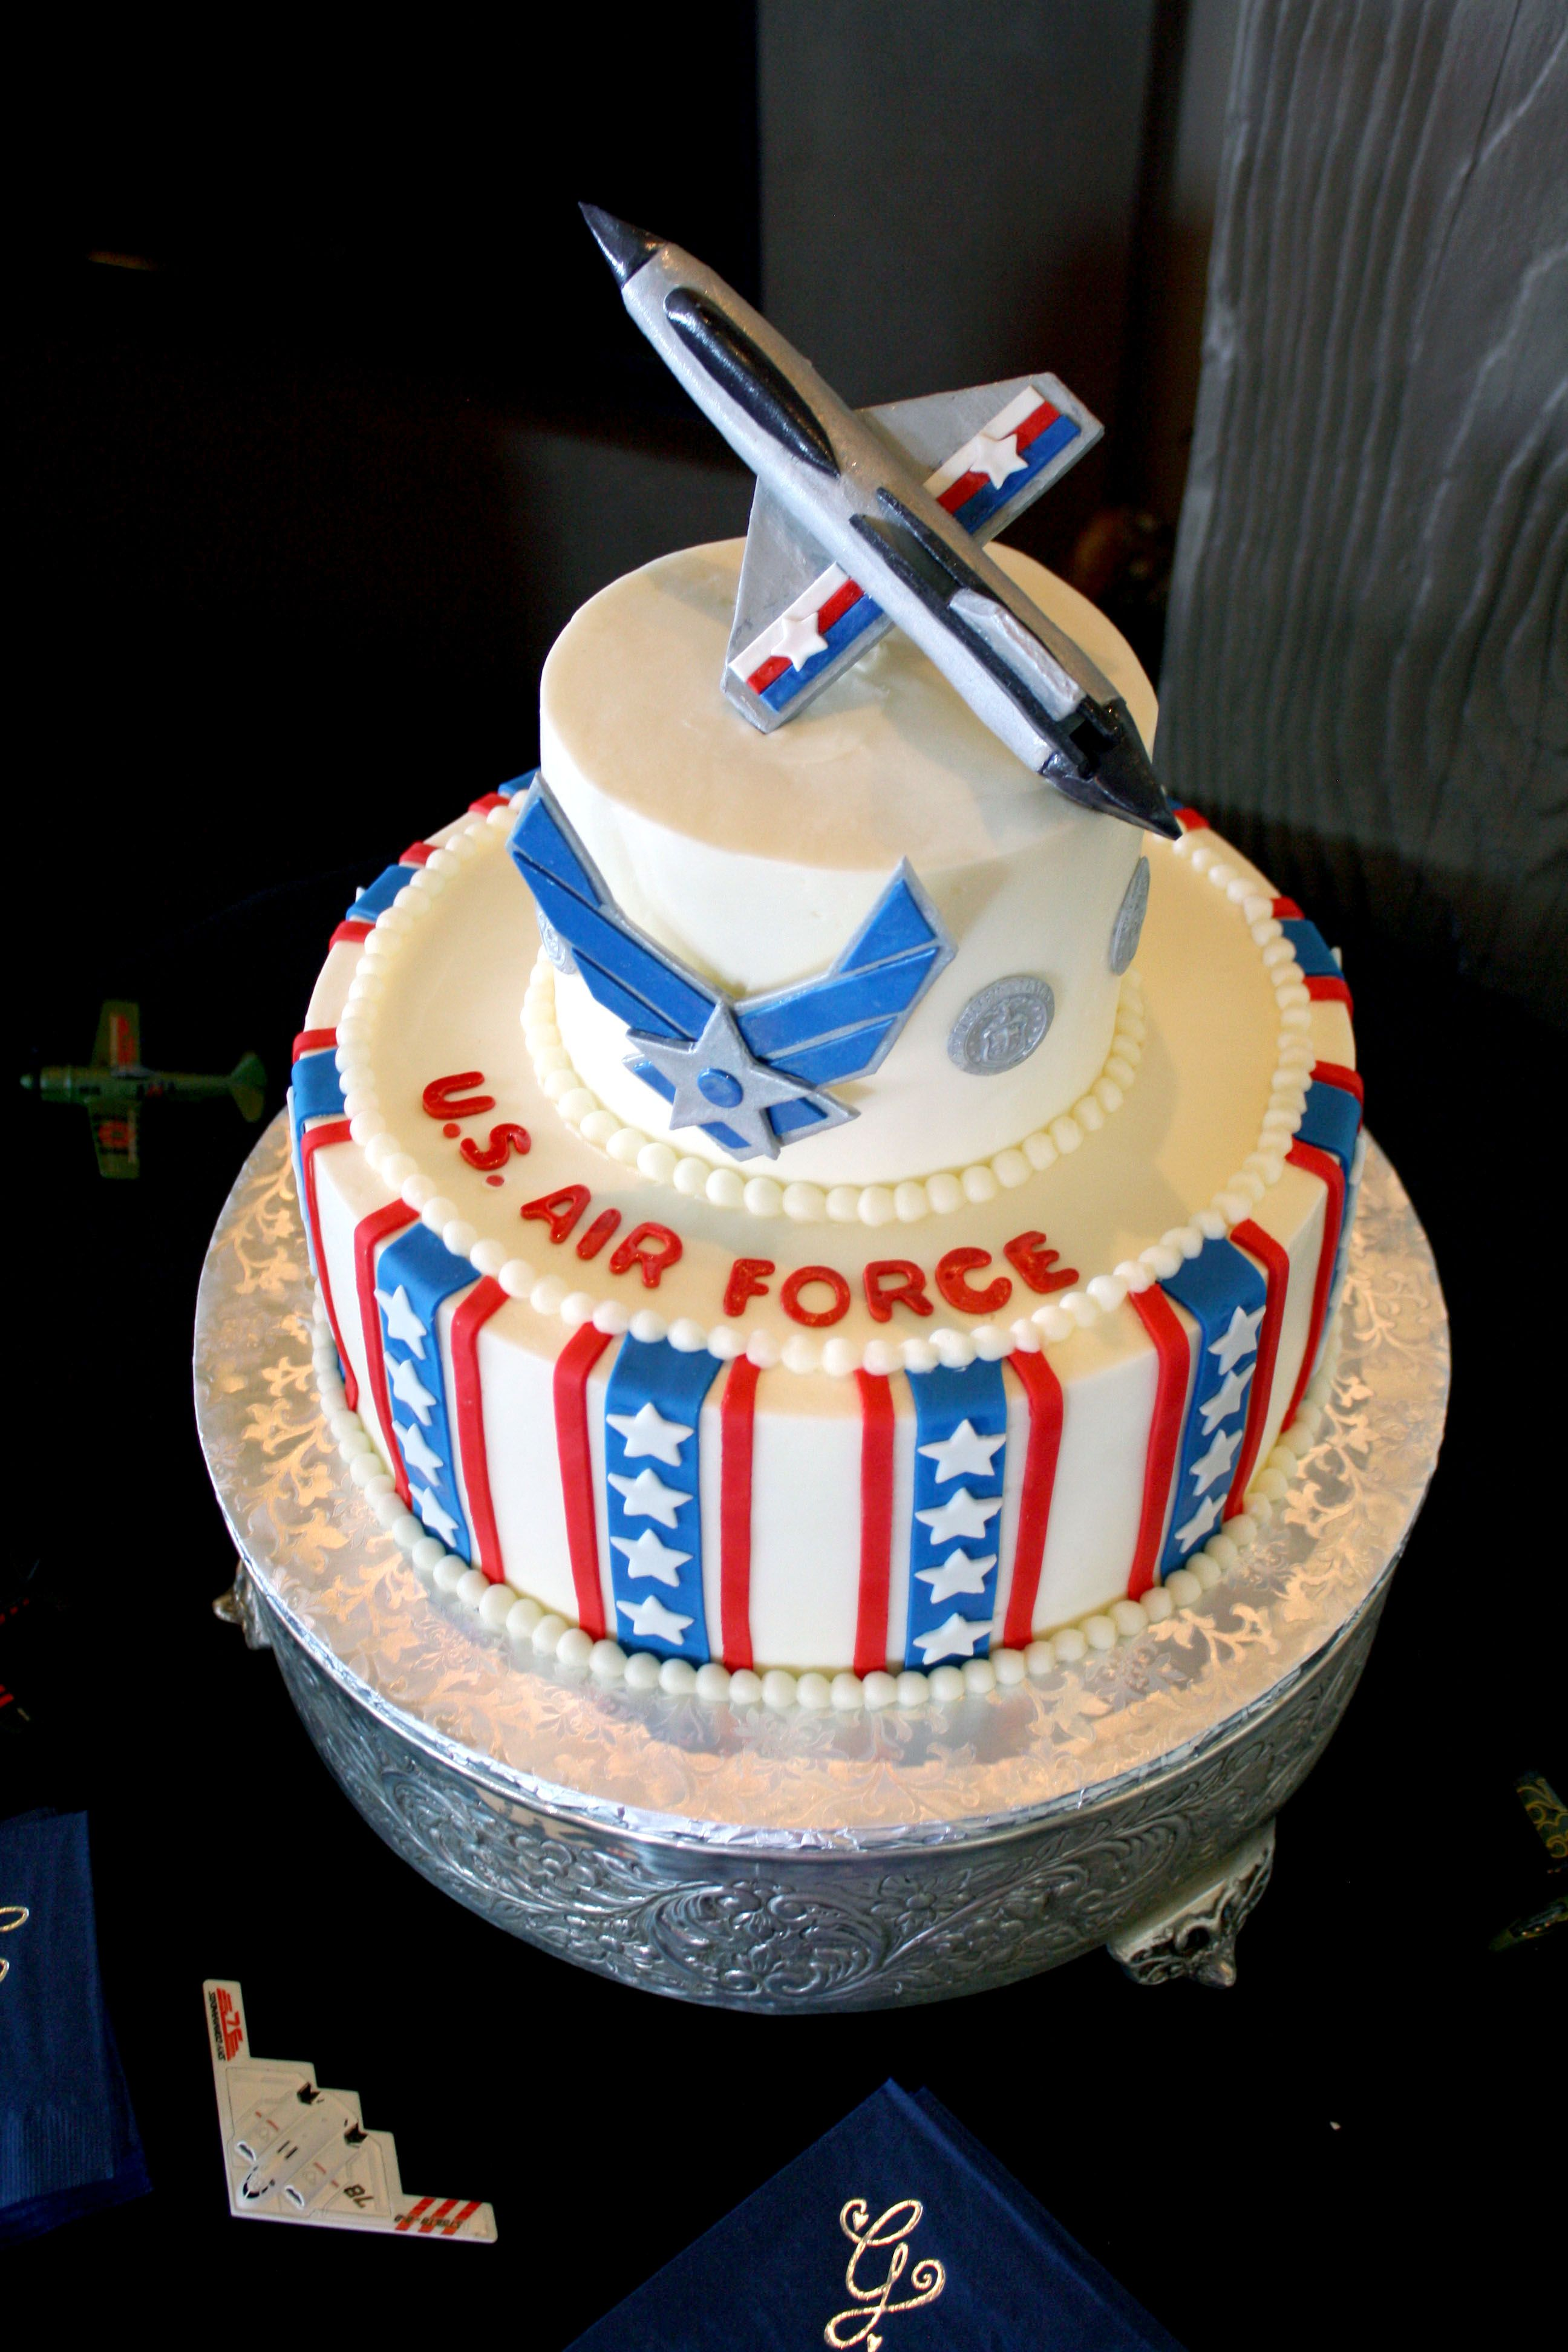 Air Froce Grooms Cake at our wedding Airplane Pinterest